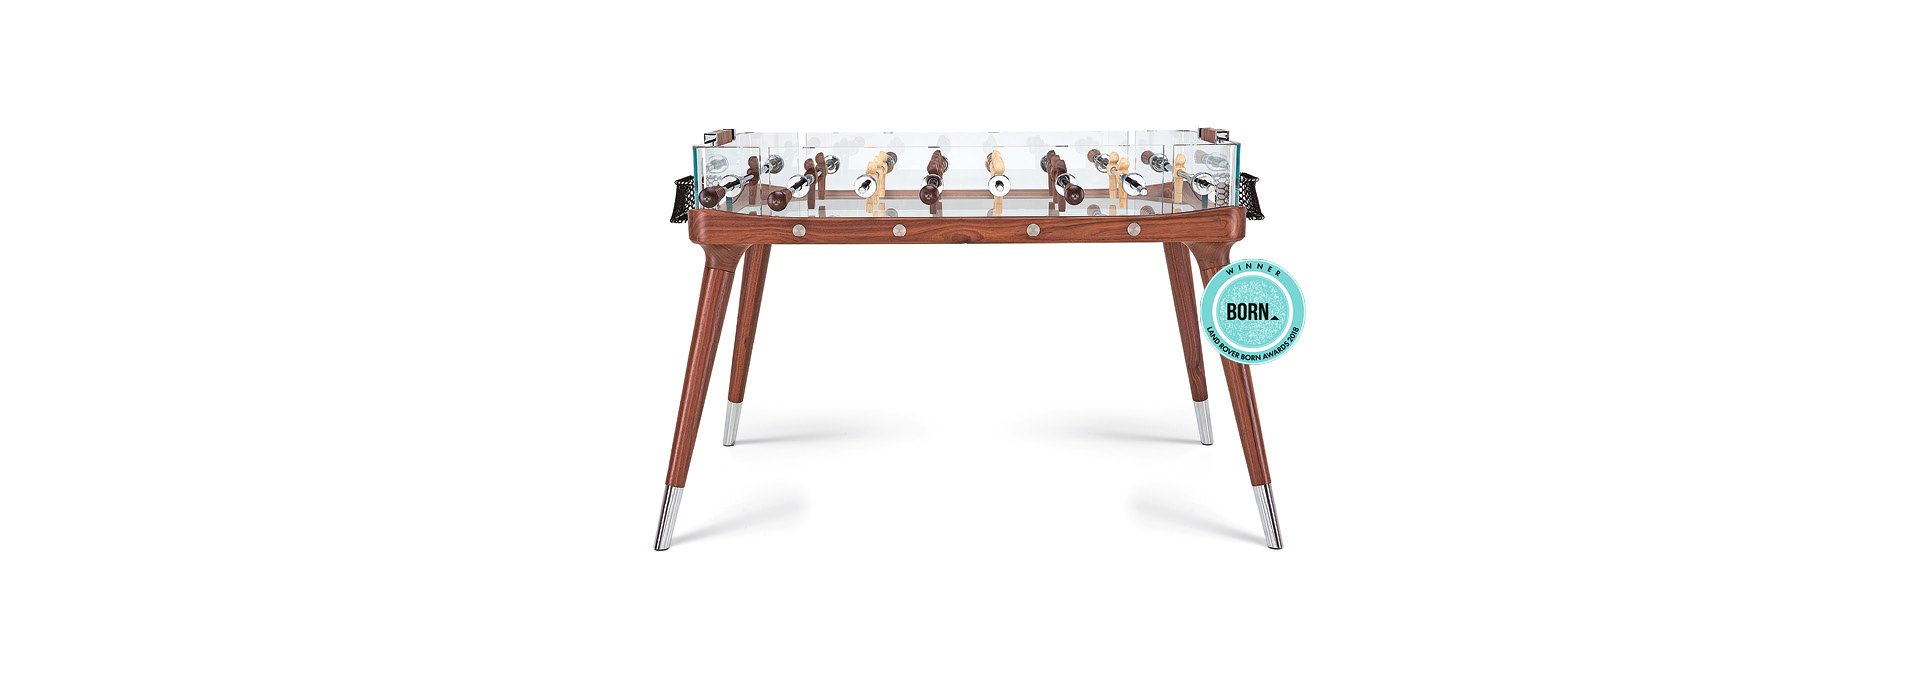 Total Foosball With Teckell